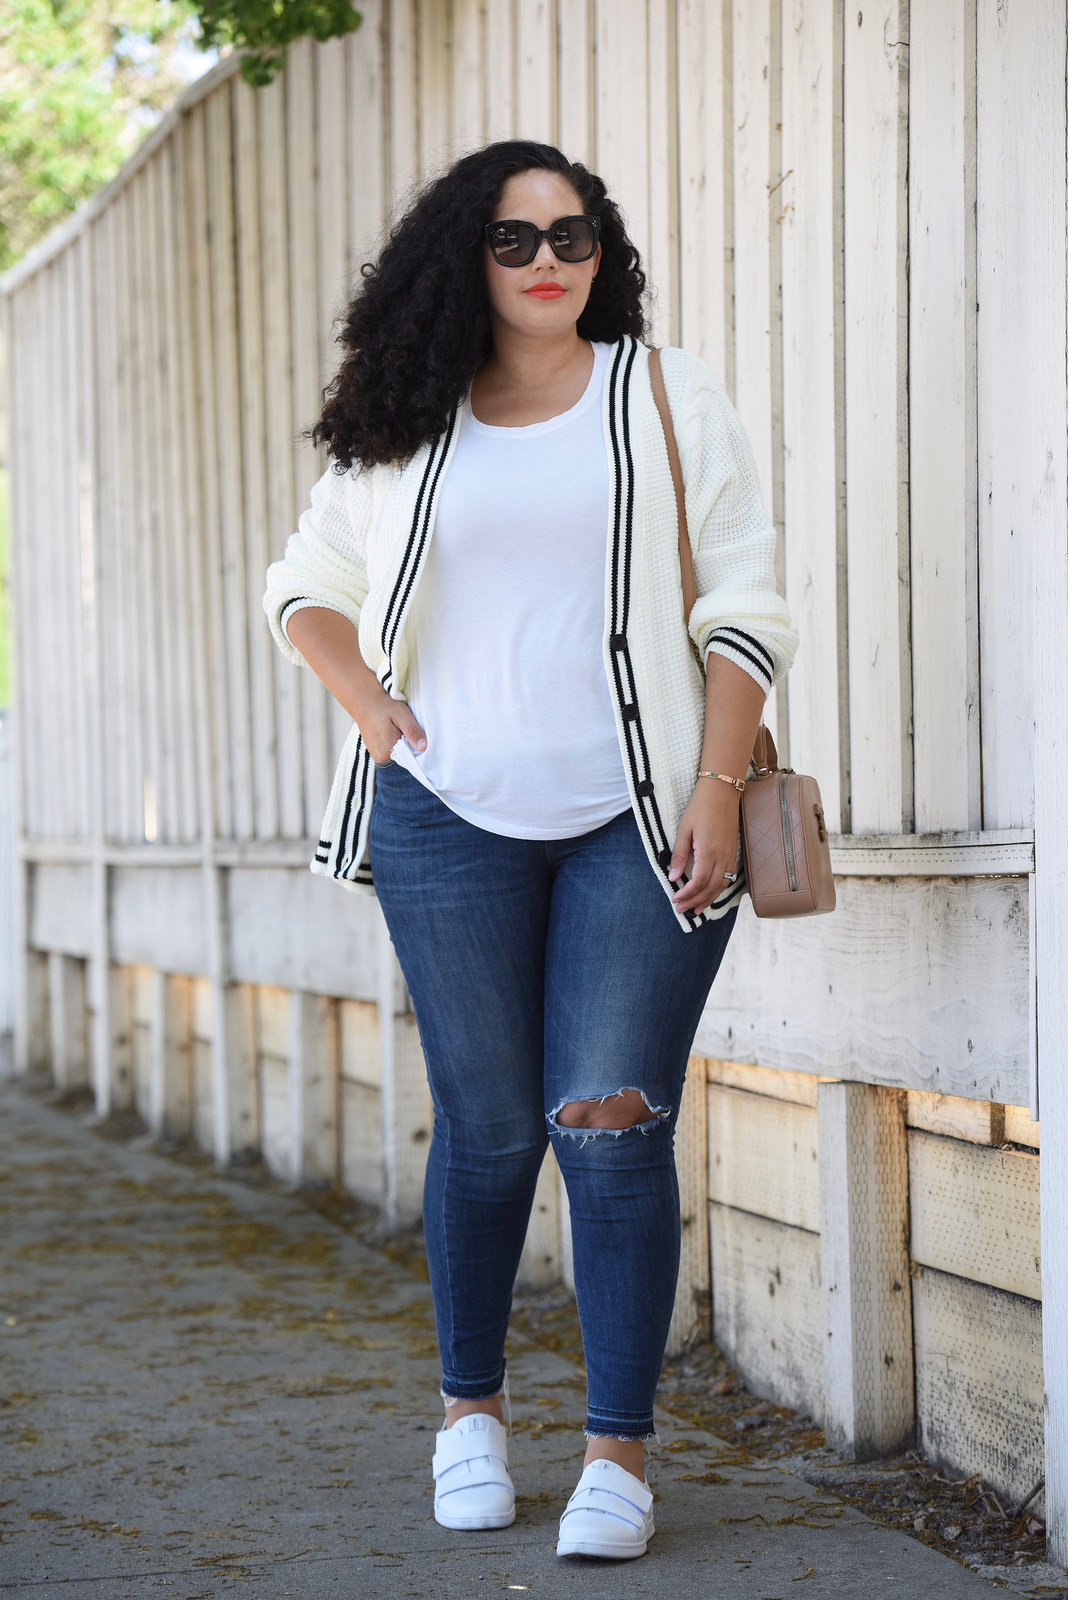 Tanesha Awasthi, also known as Girl With Curves, wearing a white tee, plus size skinny jeans, white sneakers and Chanel bag.